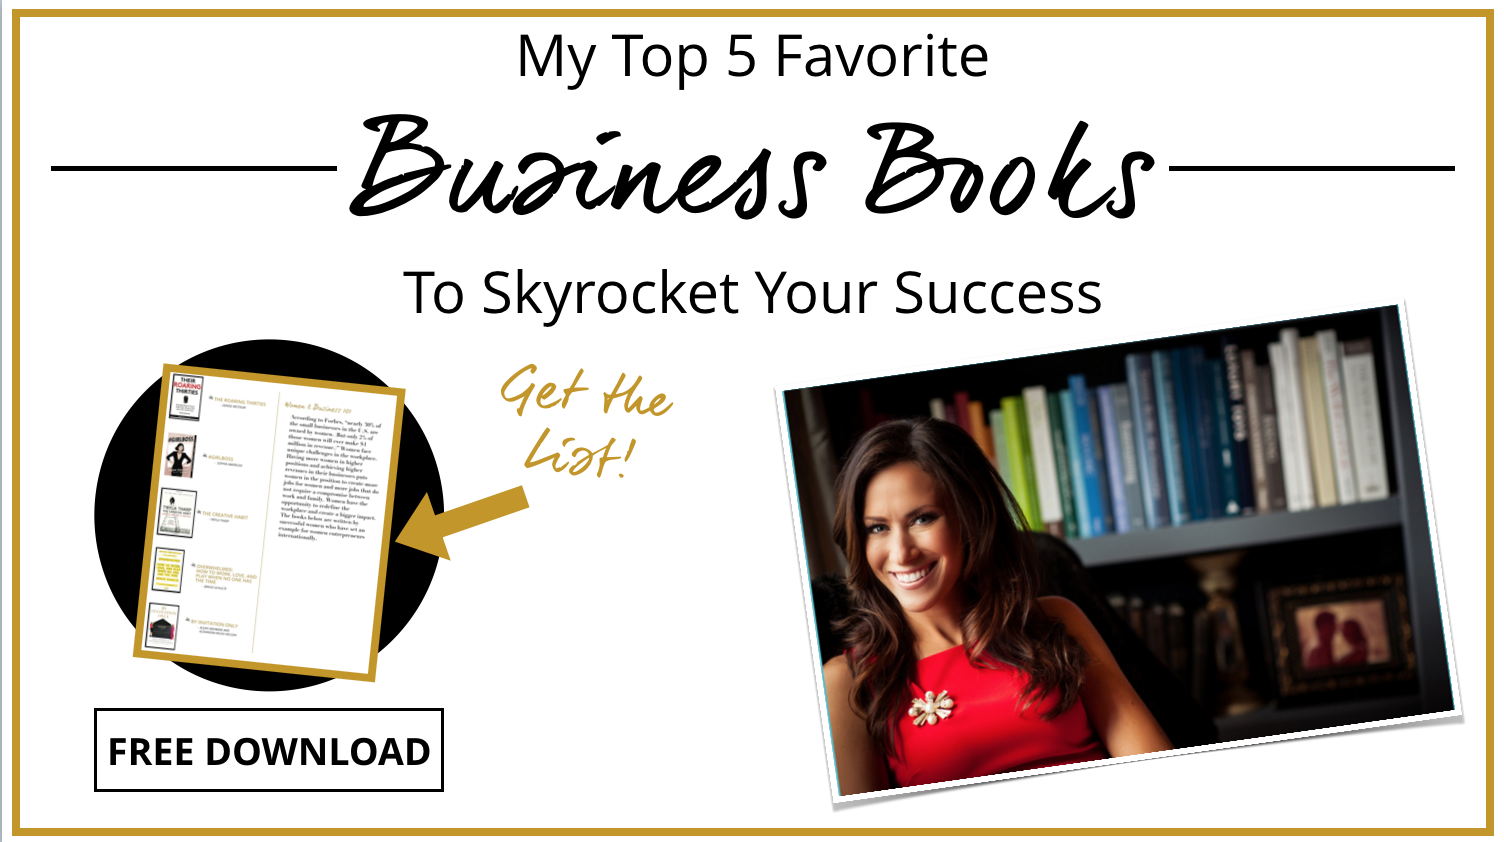 Want a world-class business education? Download my Master List of Favorite Business Books and start learning from the greats!